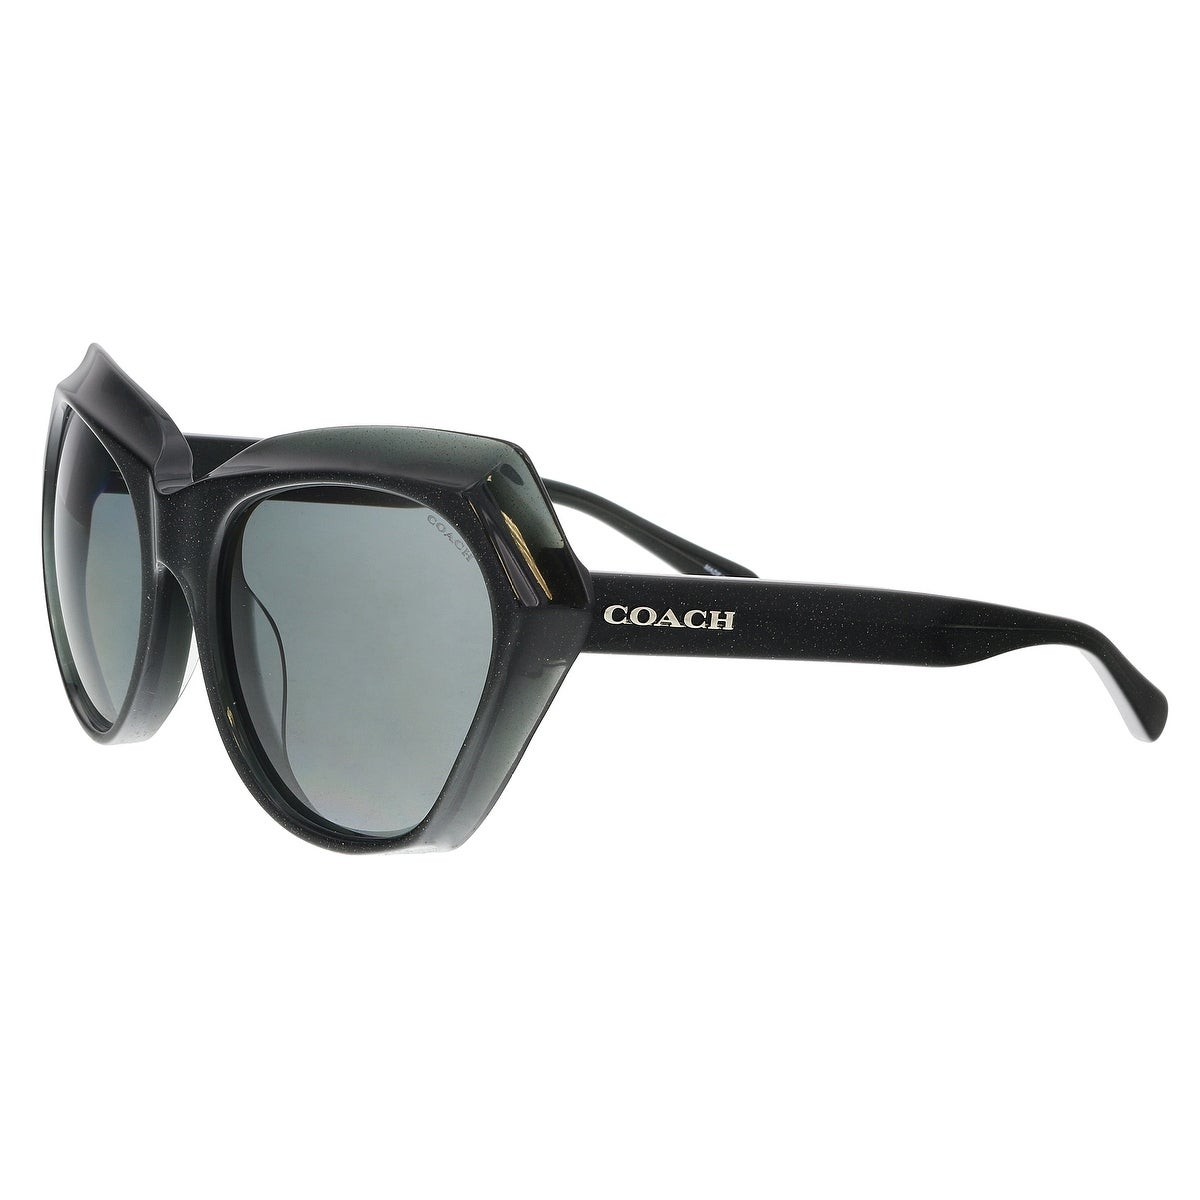 05d6b2593f1 Coach Sunglasses